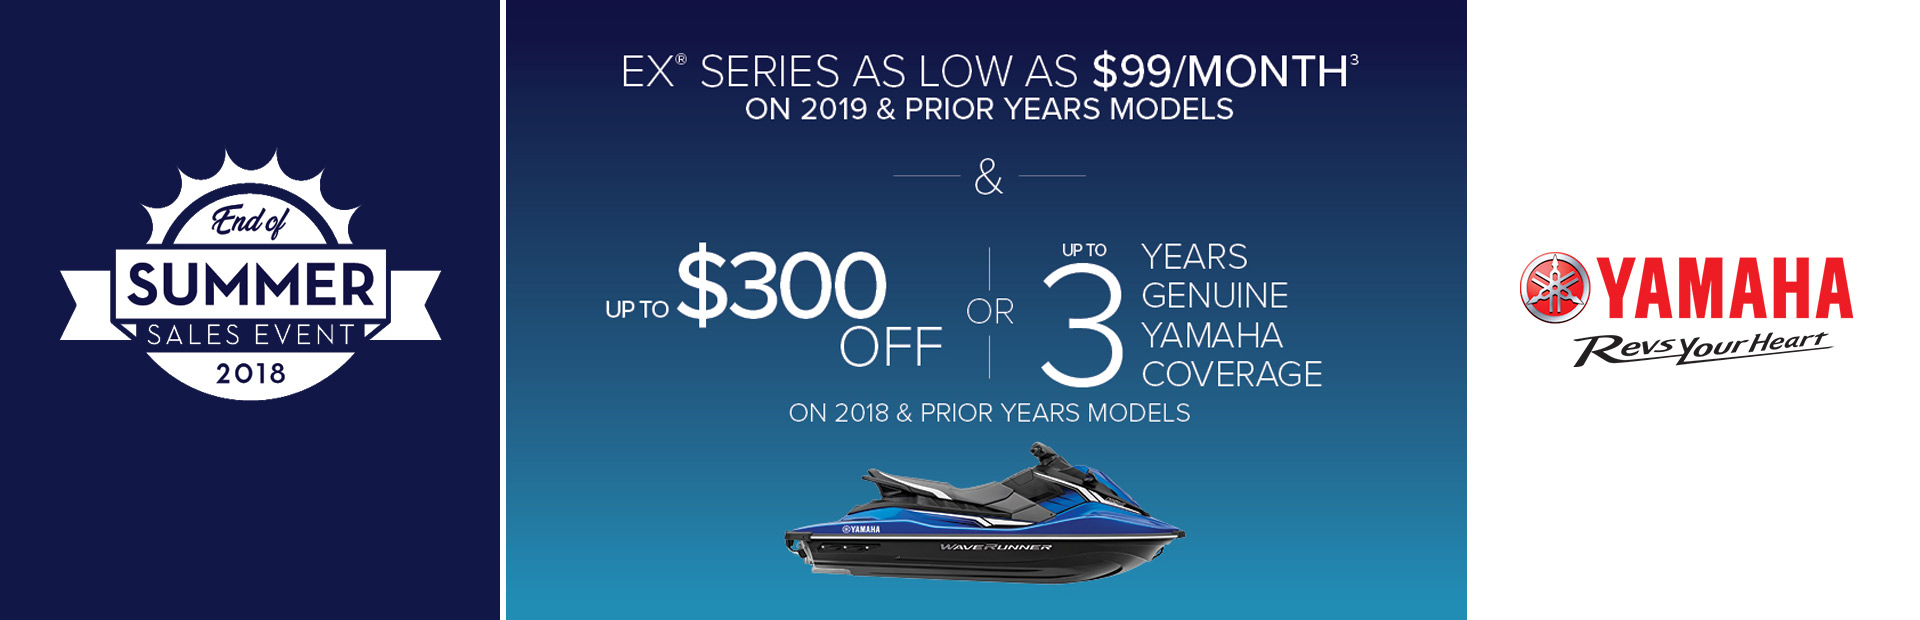 Yamaha: End of Season Sales Event - As Low As $99/Month